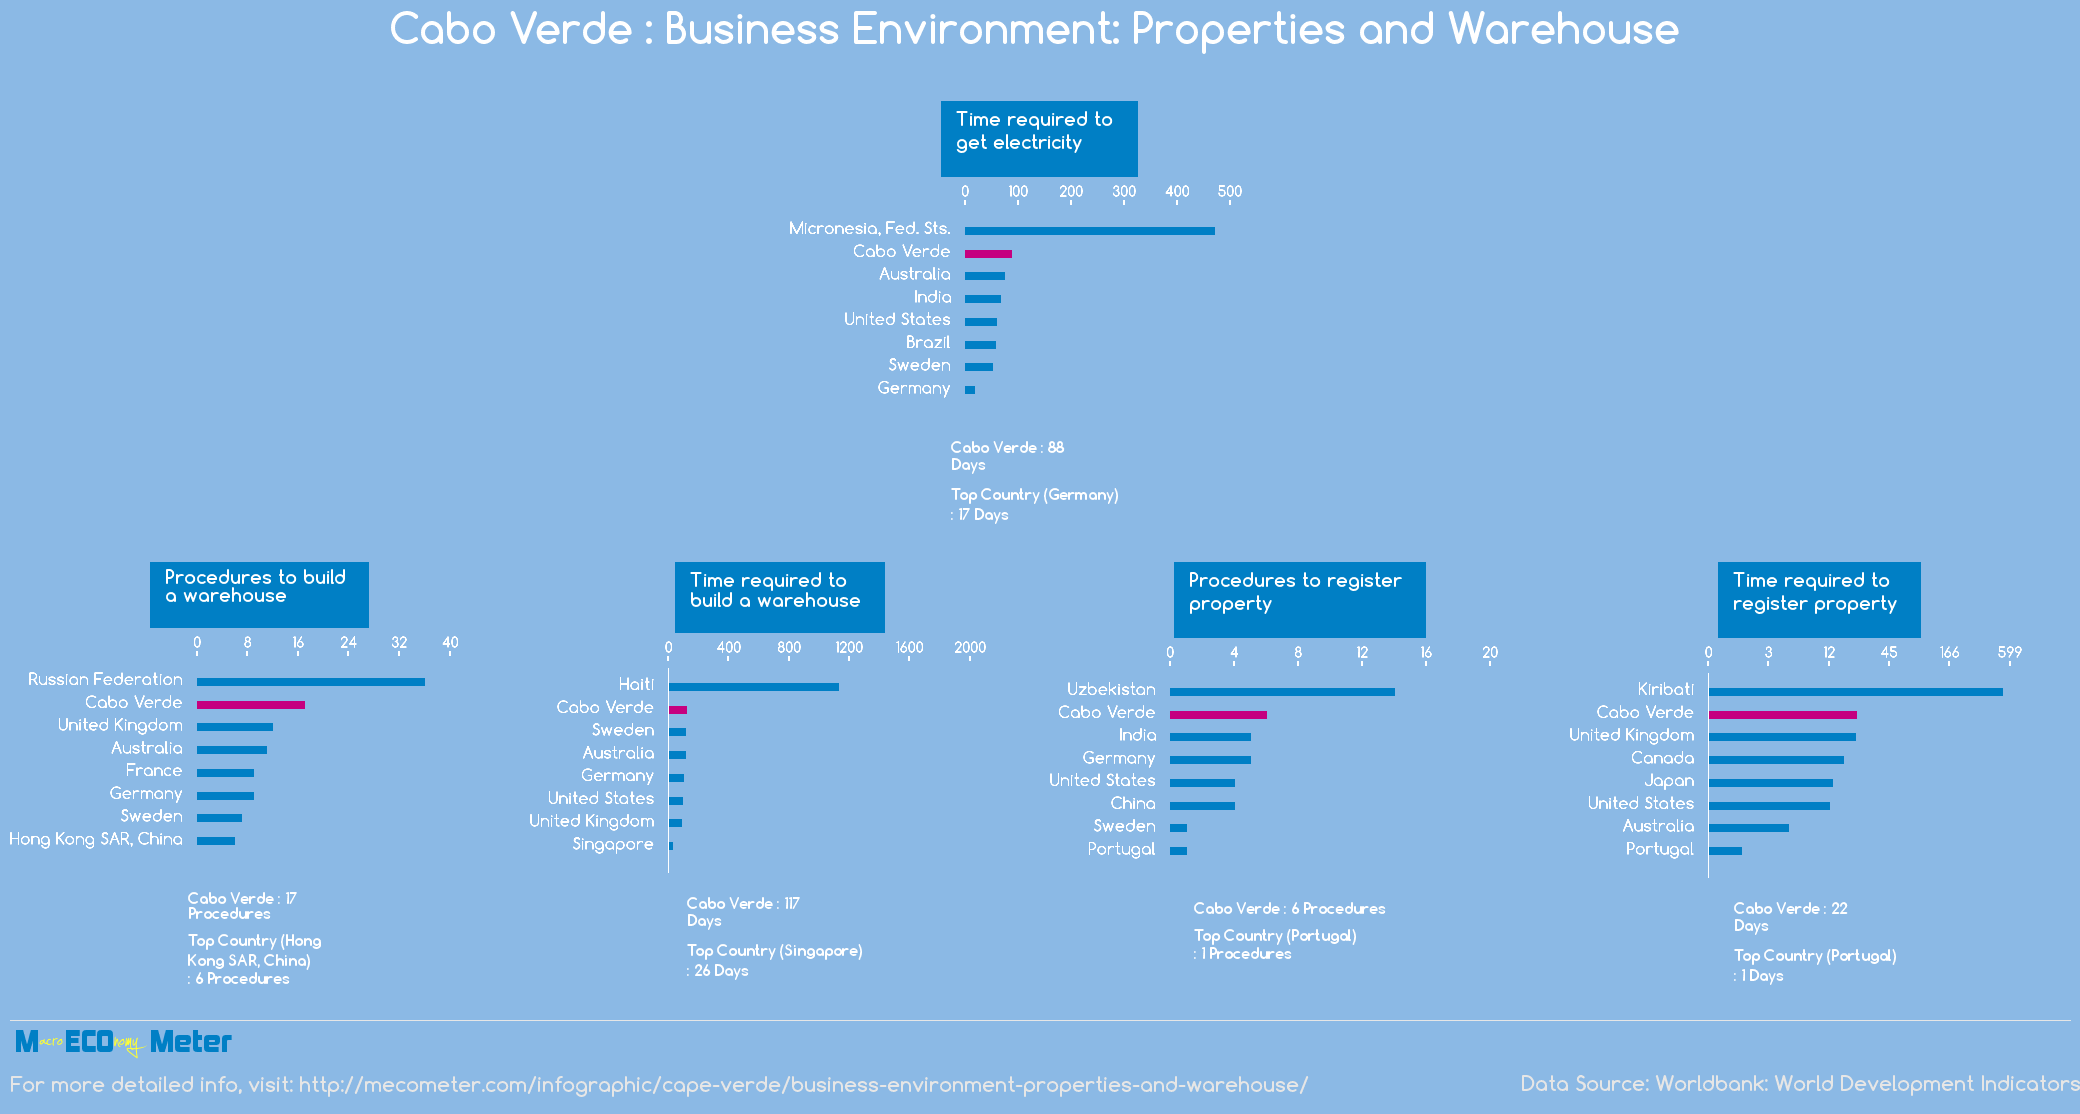 Cape Verde : Business Environment: Properties and Warehouse